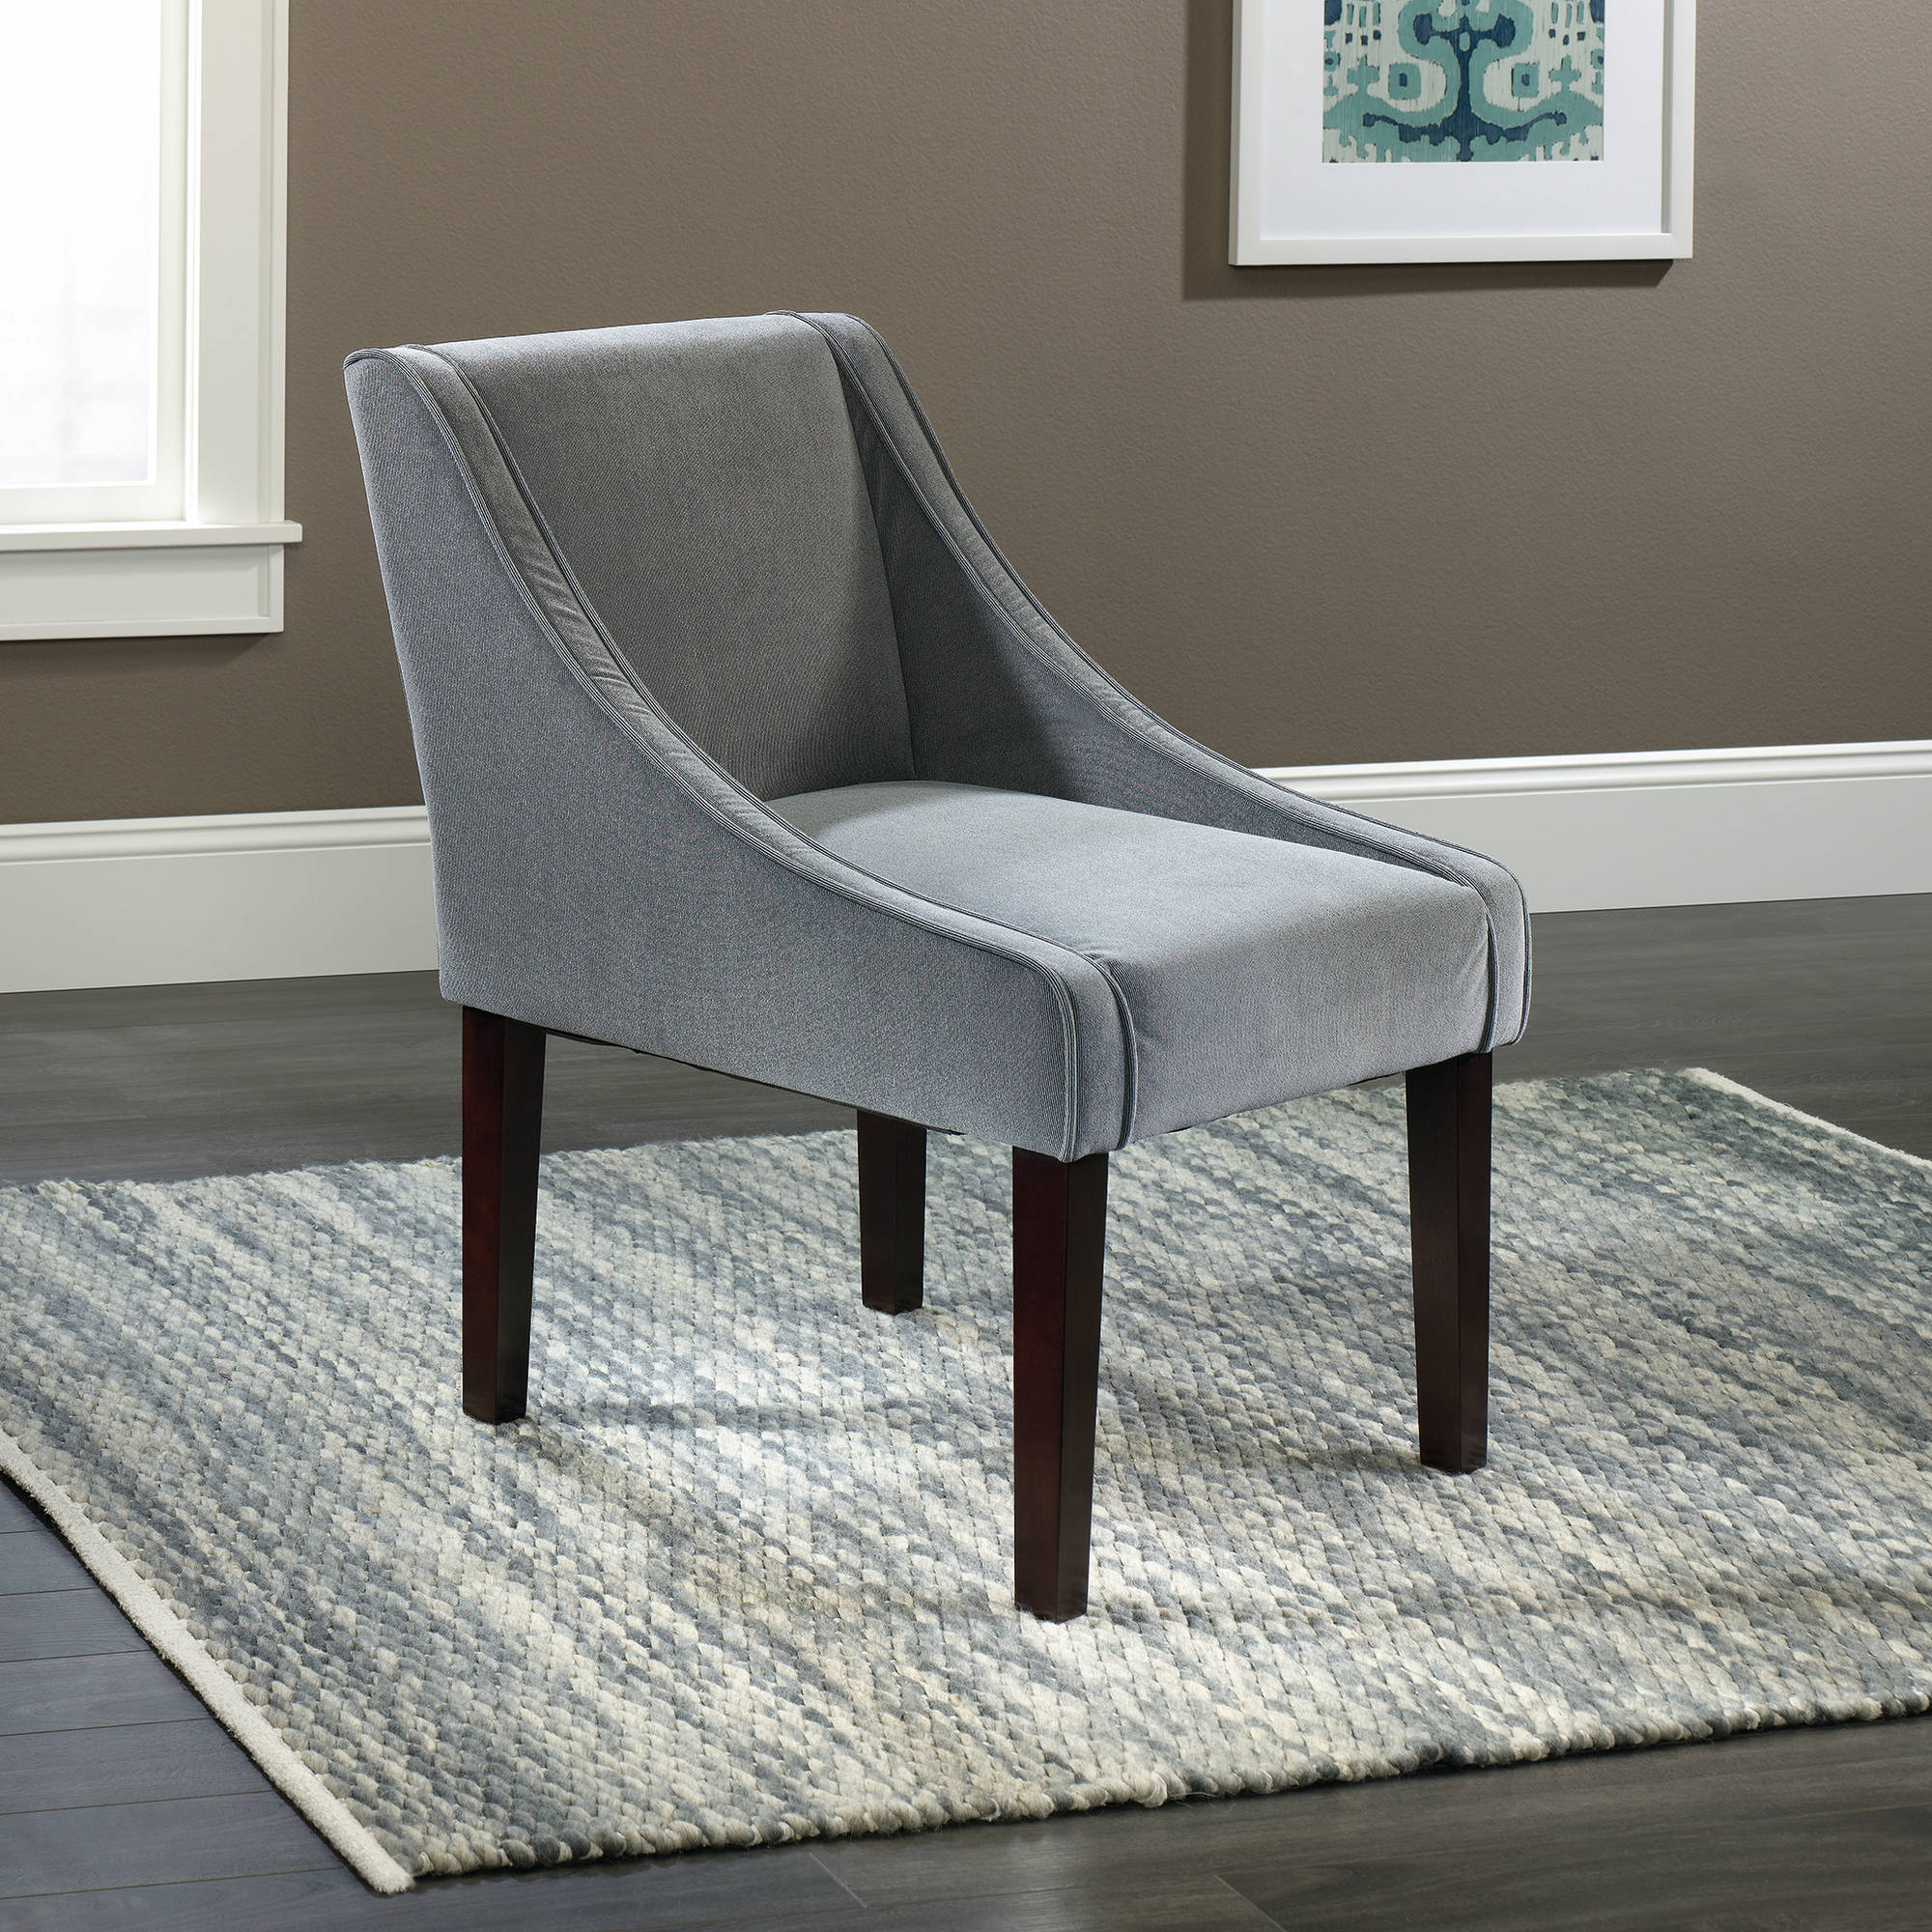 Sauder Arlie Accent Chair, Gray Finish